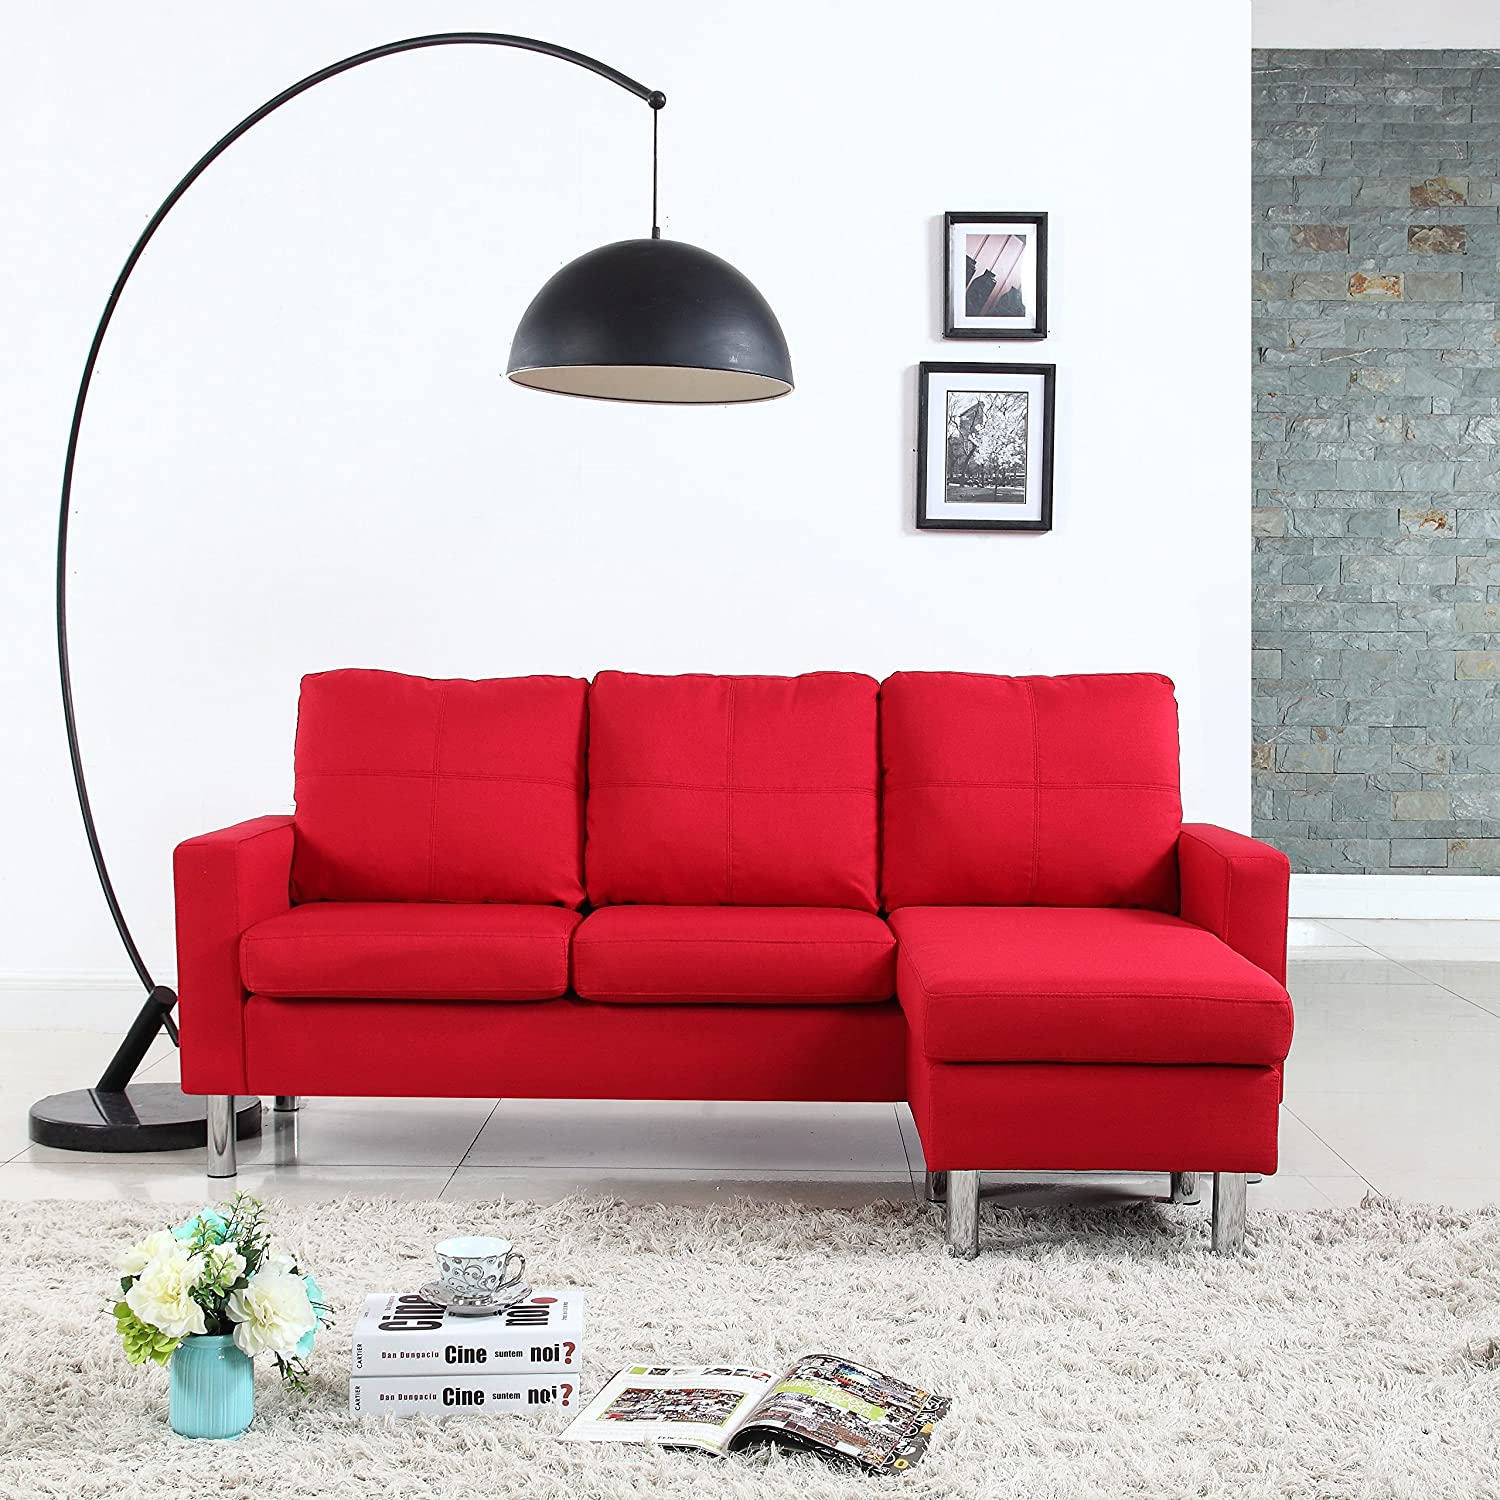 Pleasant Modern Small Space Reversible Linen Fabric Sectional Sofa In Color Light Grey Dark Grey Beige Red Red Machost Co Dining Chair Design Ideas Machostcouk